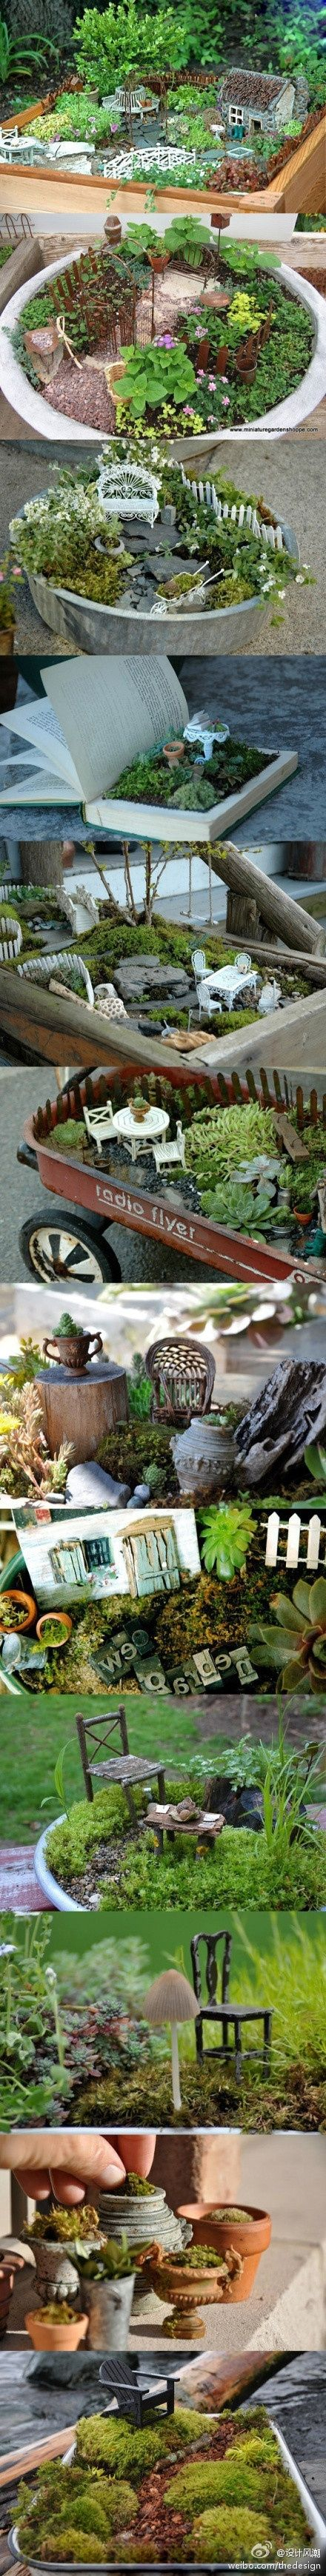 best crafts images on pinterest garden deco landscaping and